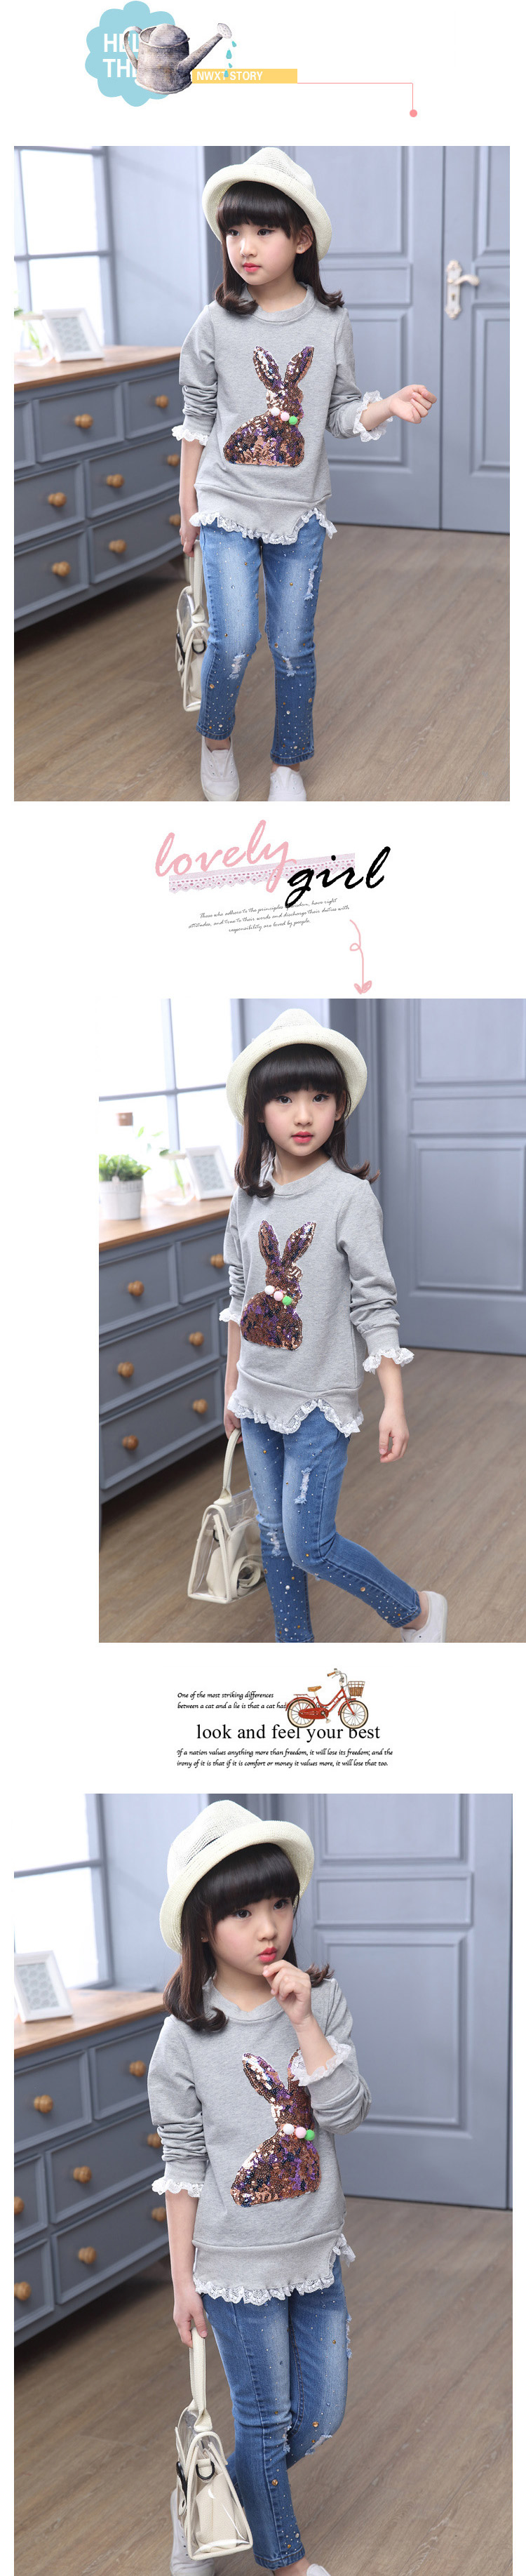 f3b49b04a Baby Girl Long sleeve T-shirt child sequined rabbit tops fall 2017 Fashion  cotton Elastic Kids Girls Clothes 4 8 10 12 years old 7 9 10 11 A A1 A2 A3  A4 B